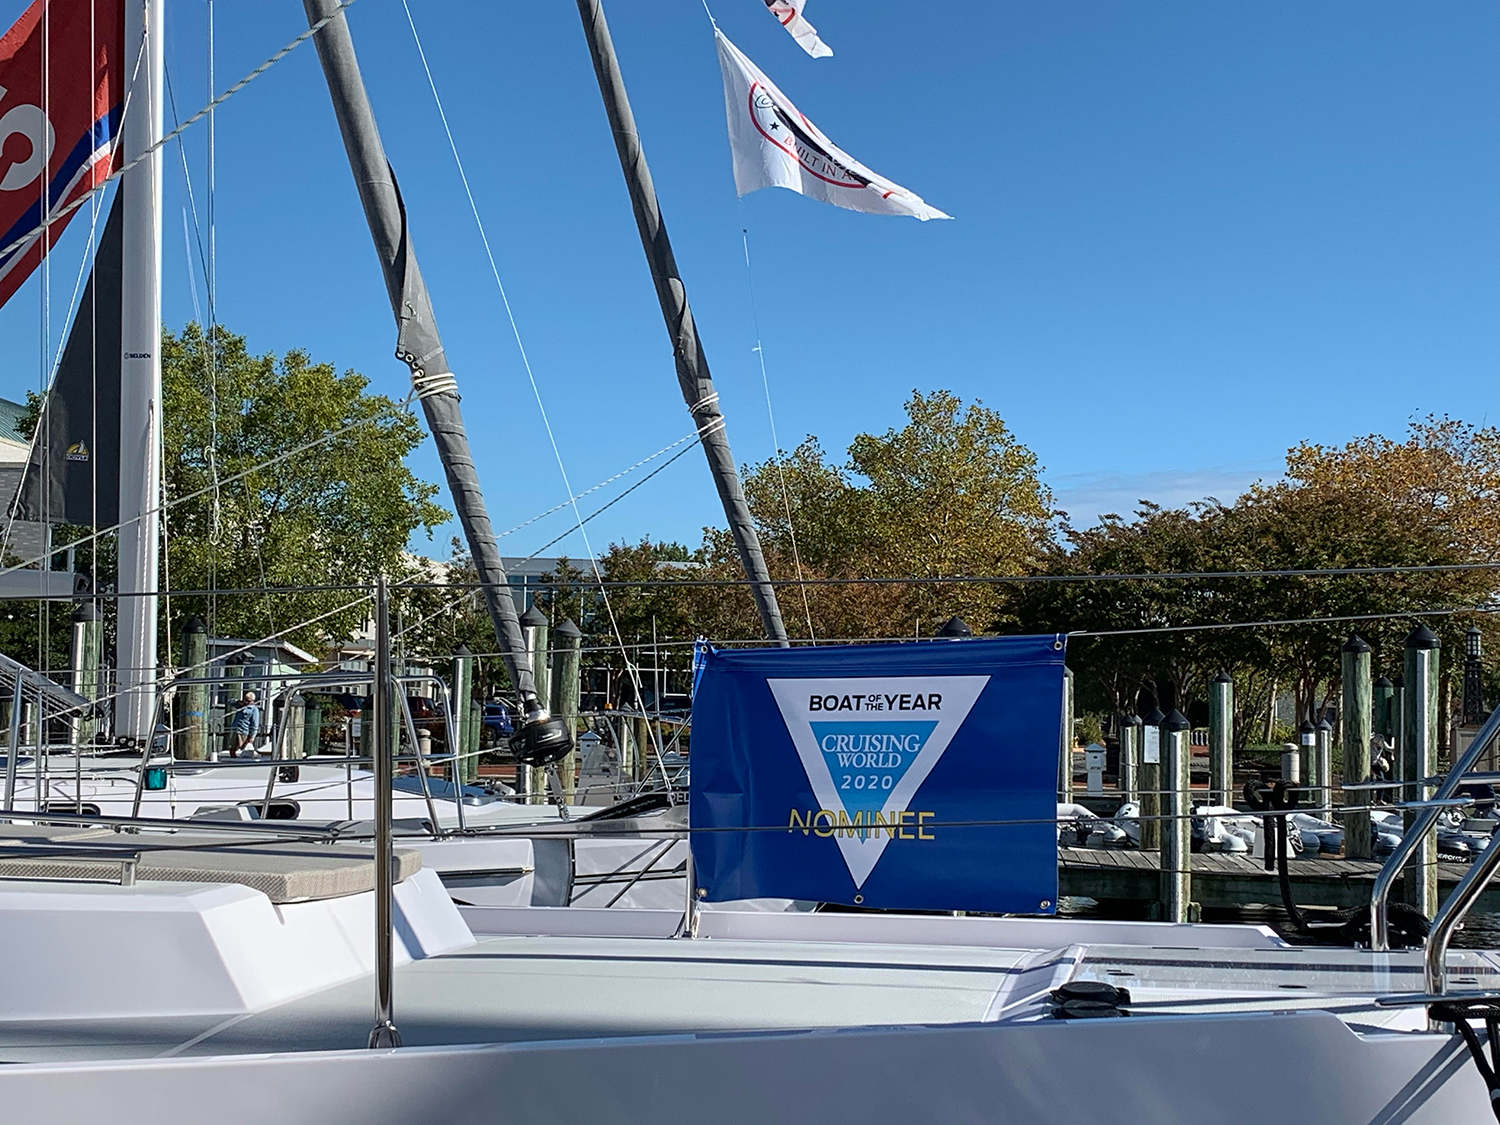 Annapolis Boat Show Spring 2020.The Dufour 390 And 430 Are Ready For Showtime Cruising World